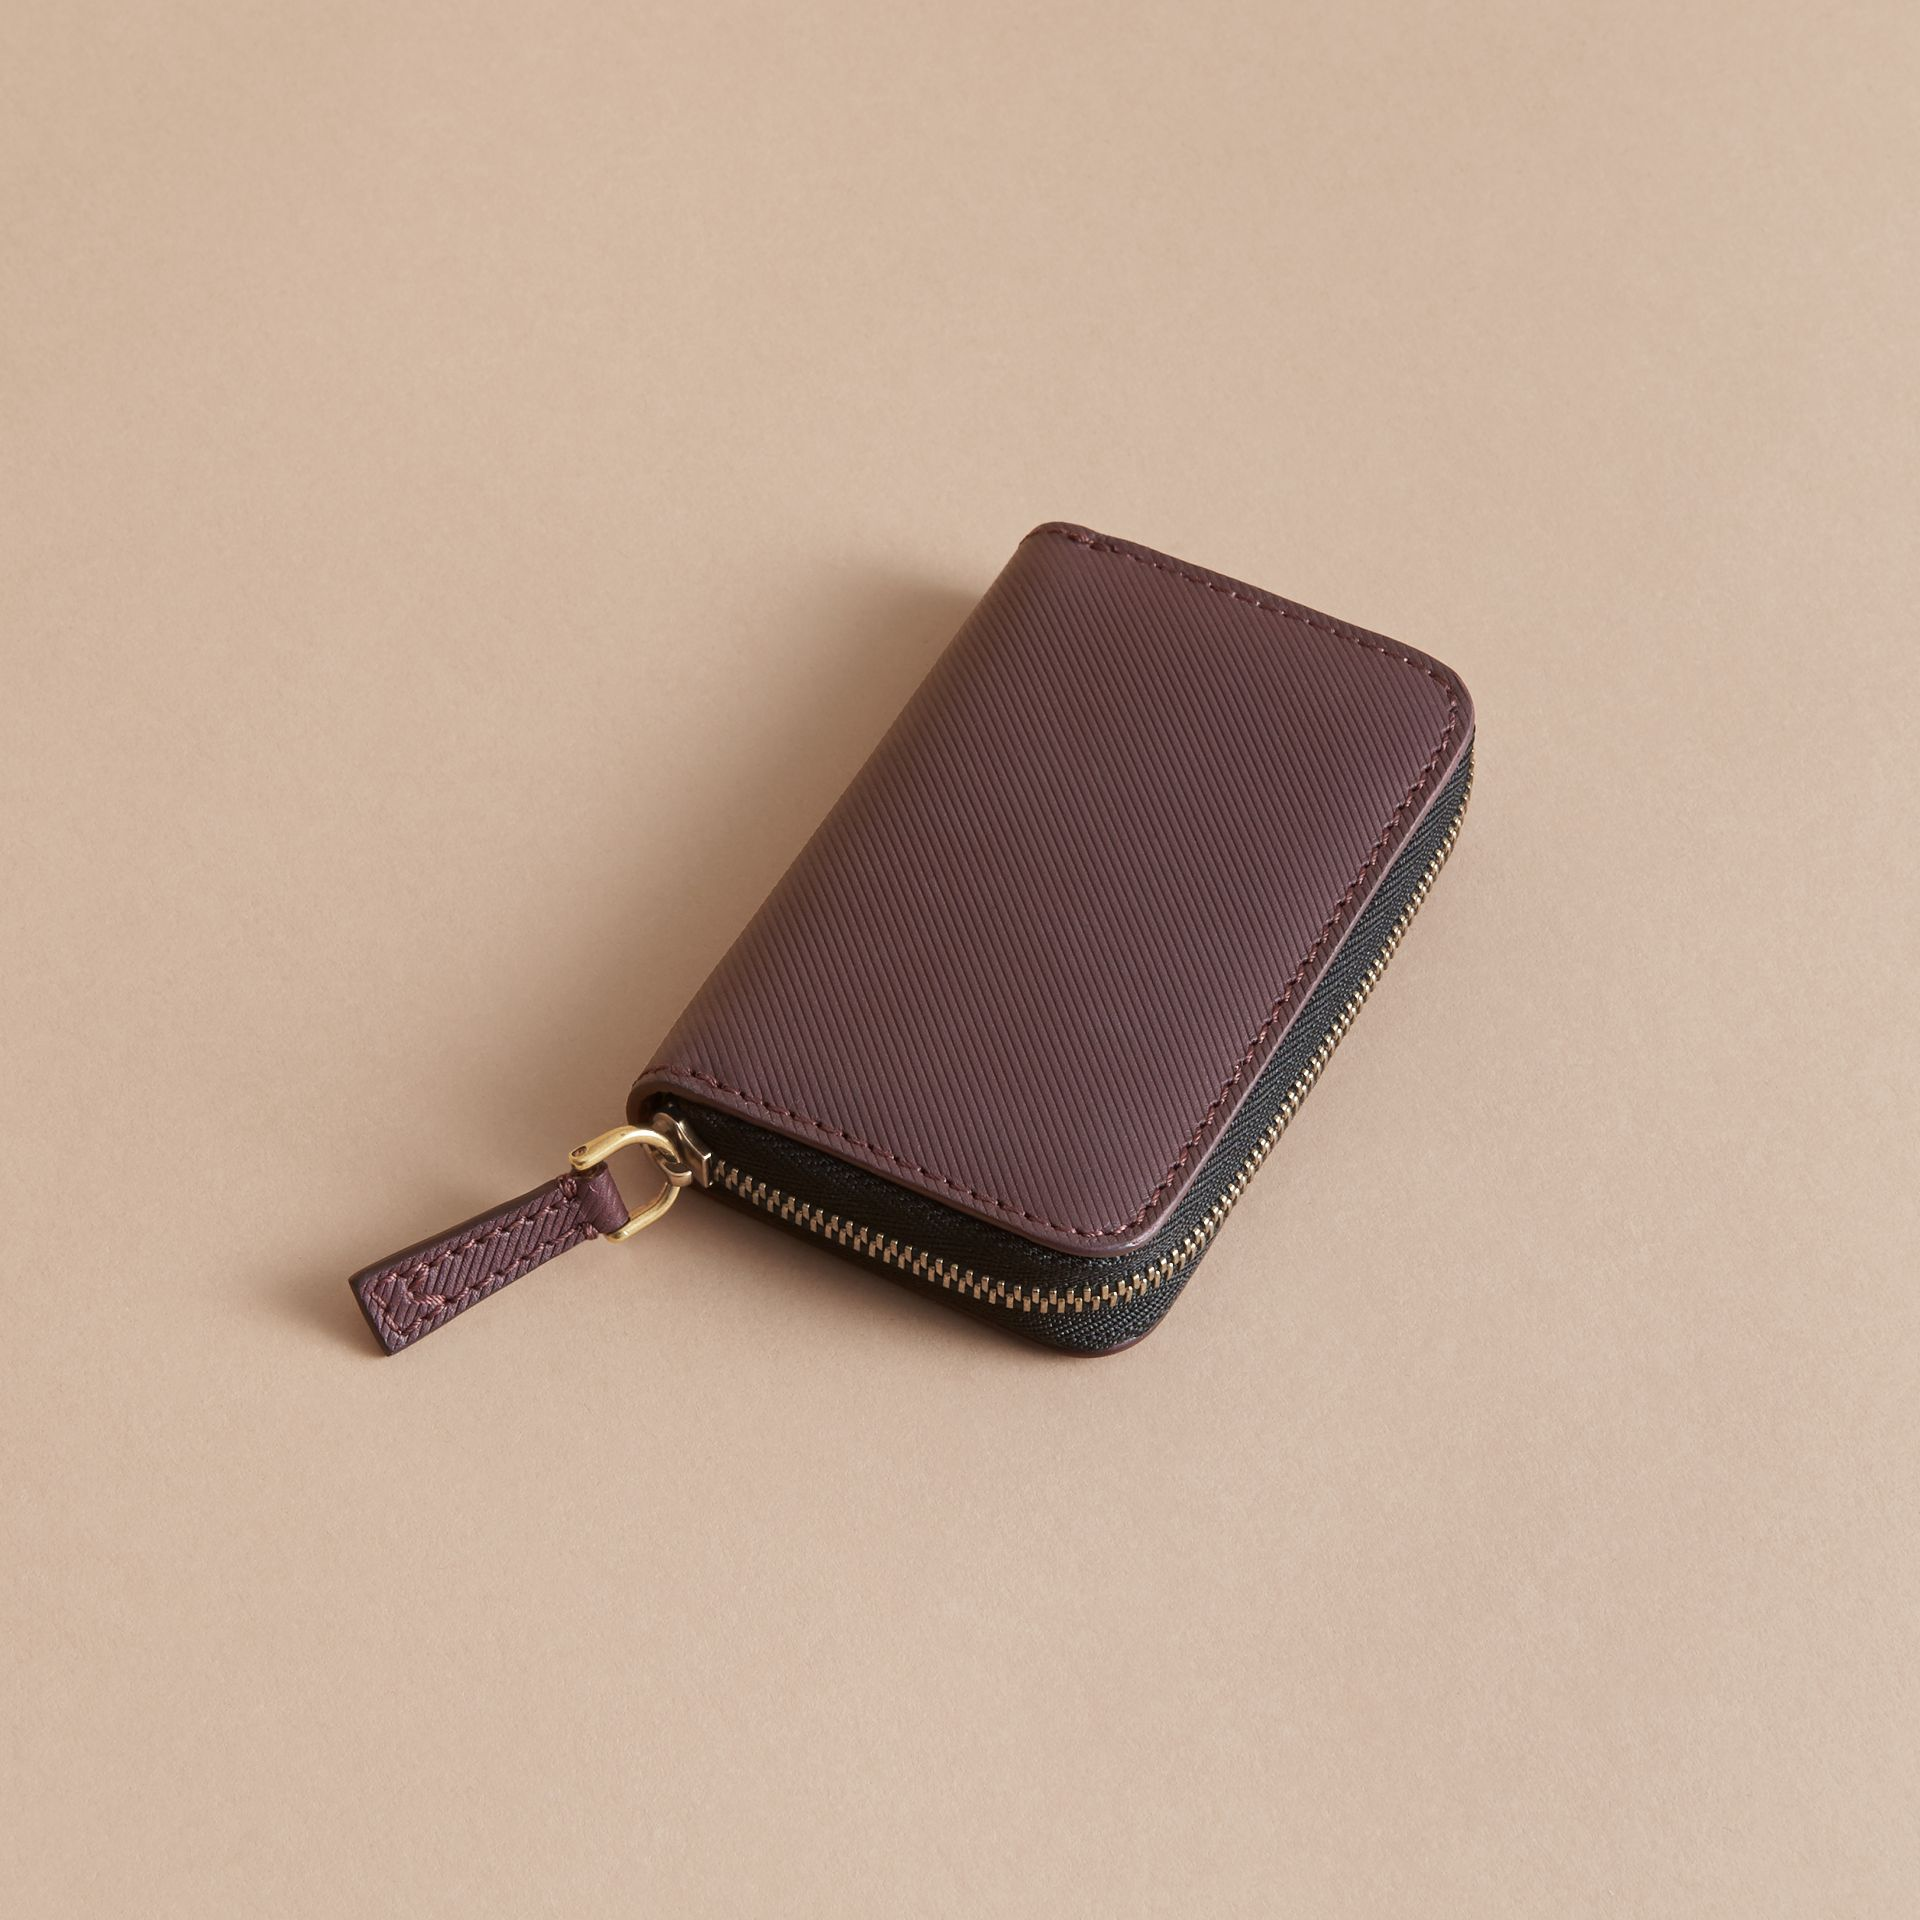 Trench Leather Ziparound Coin Case in Wine - Men | Burberry - gallery image 2